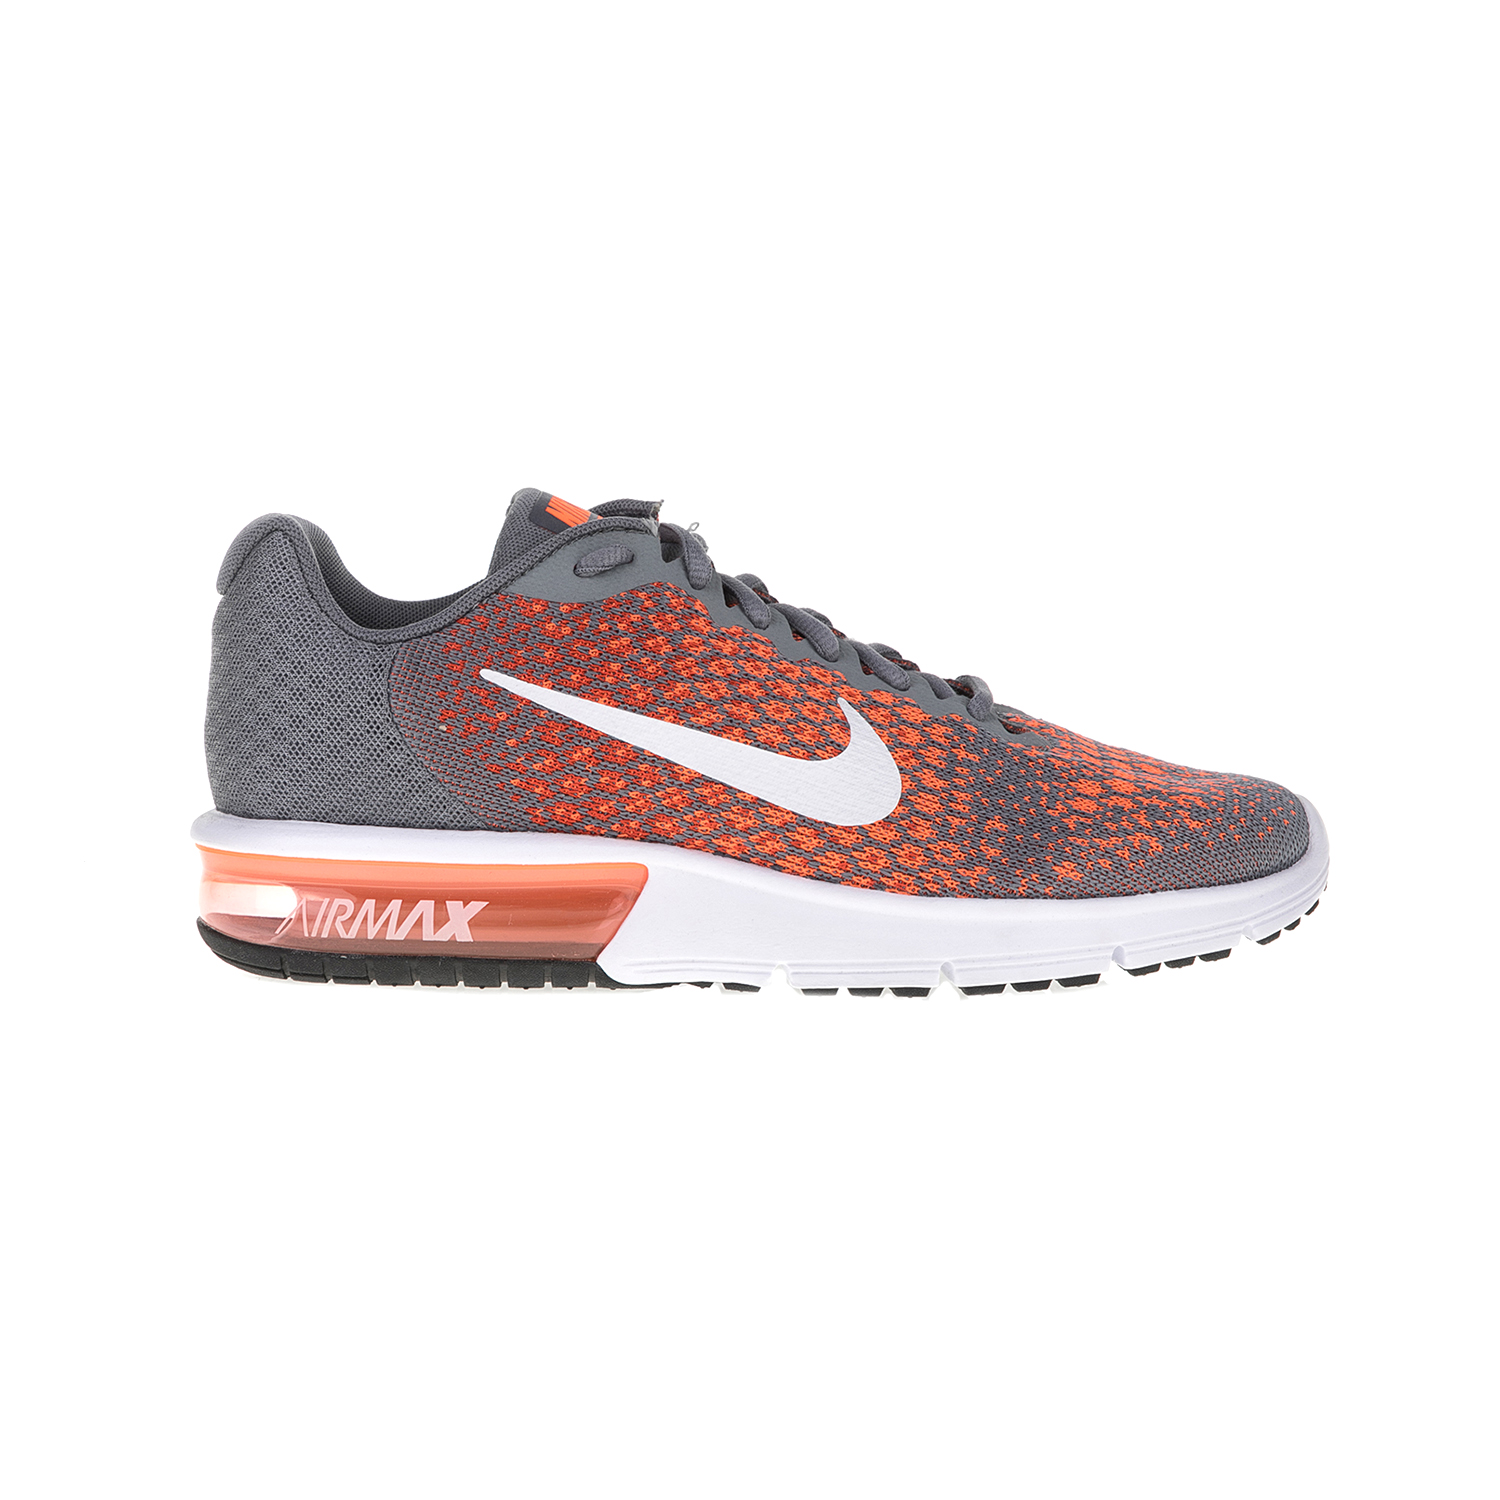 69d236d713f NIKE – Ανδρικά αθλητικά παπούτσια Nike AIR MAX SEQUENT 2 γκρι. Factoryoutlet